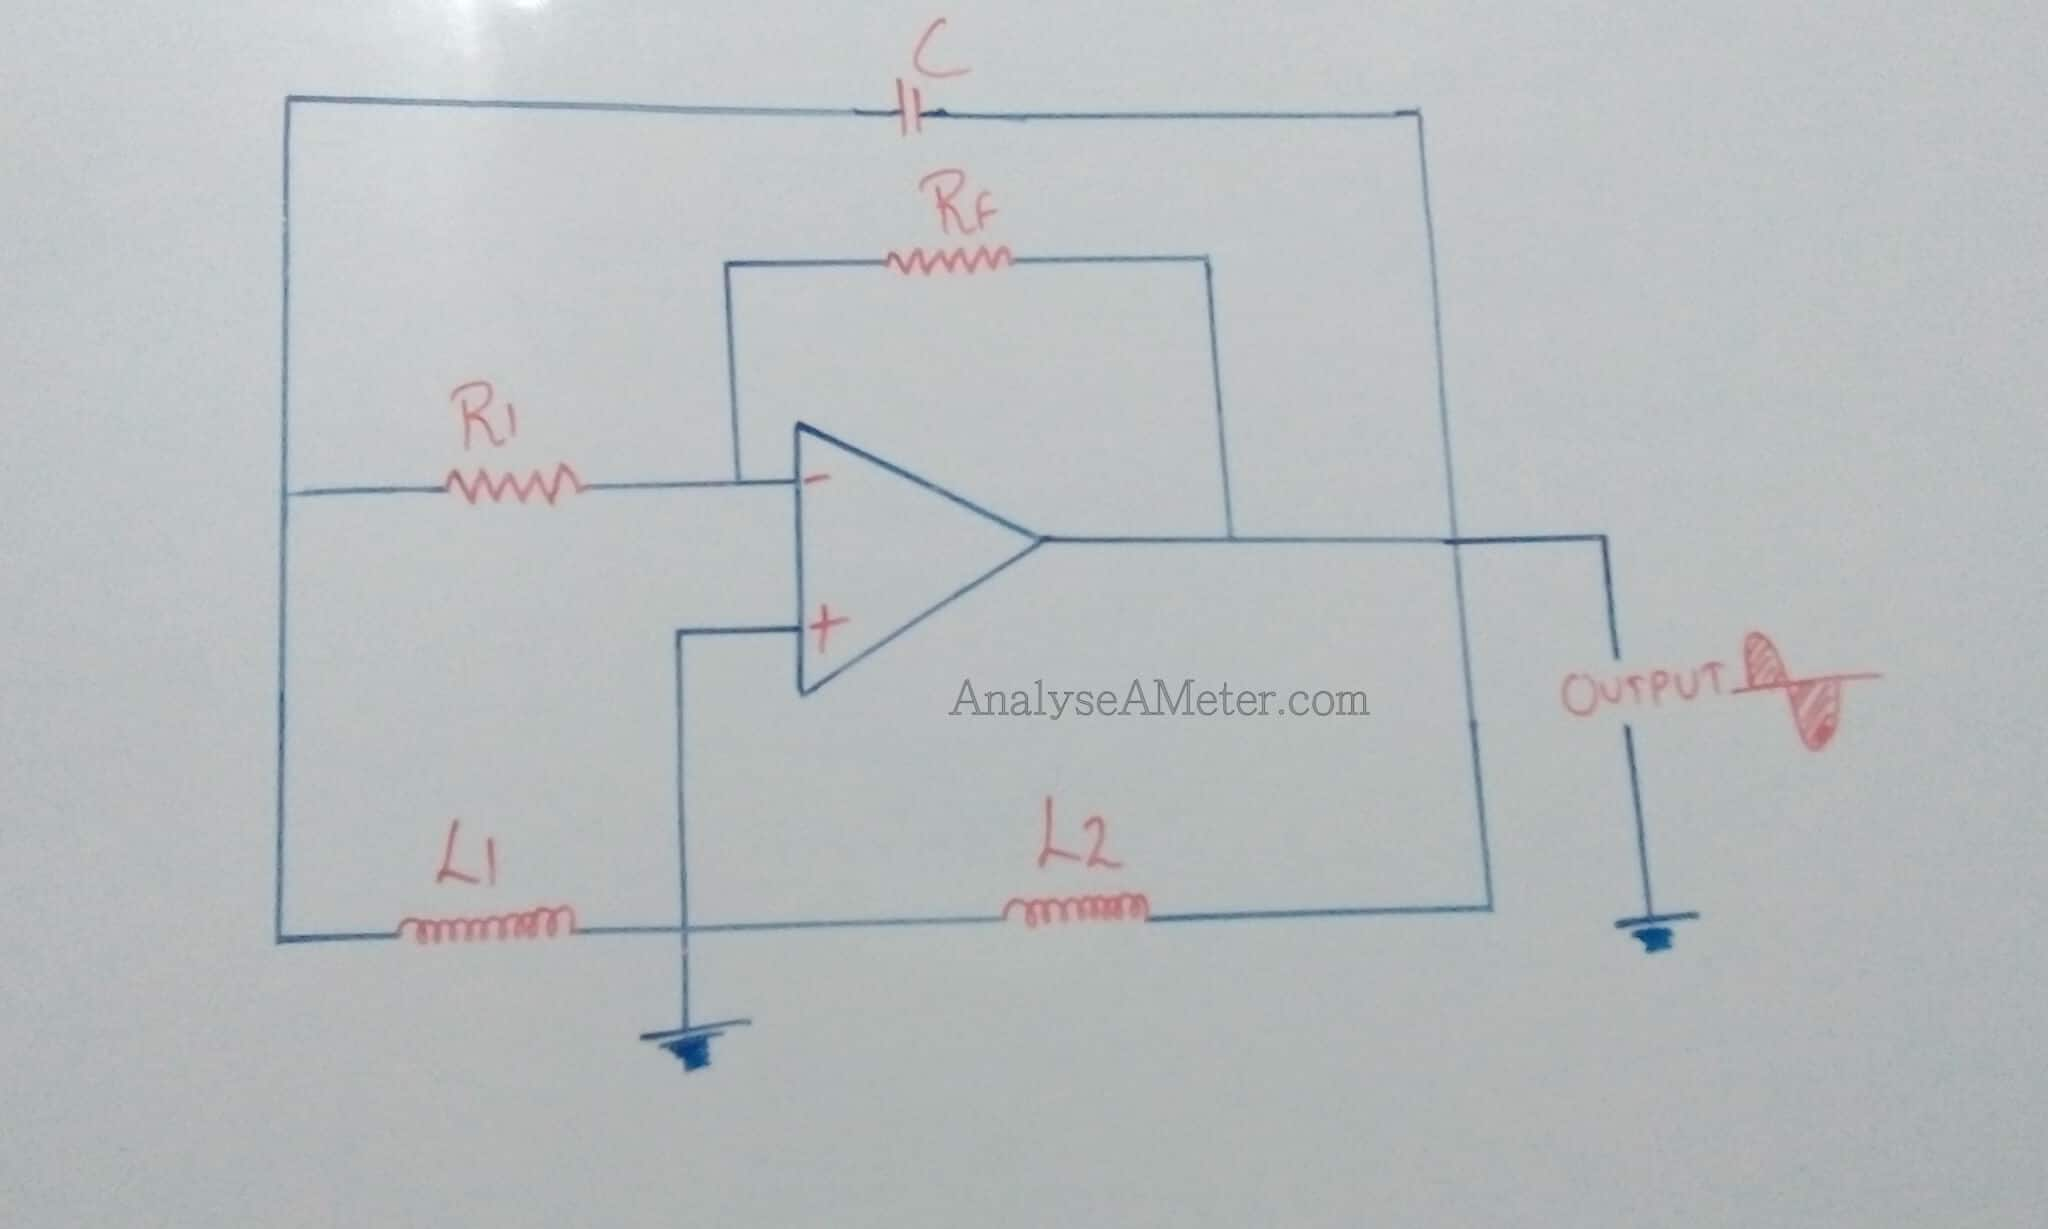 Hartley Oscillator Description Guide Analyse A Meter Op Amp Circuits Using